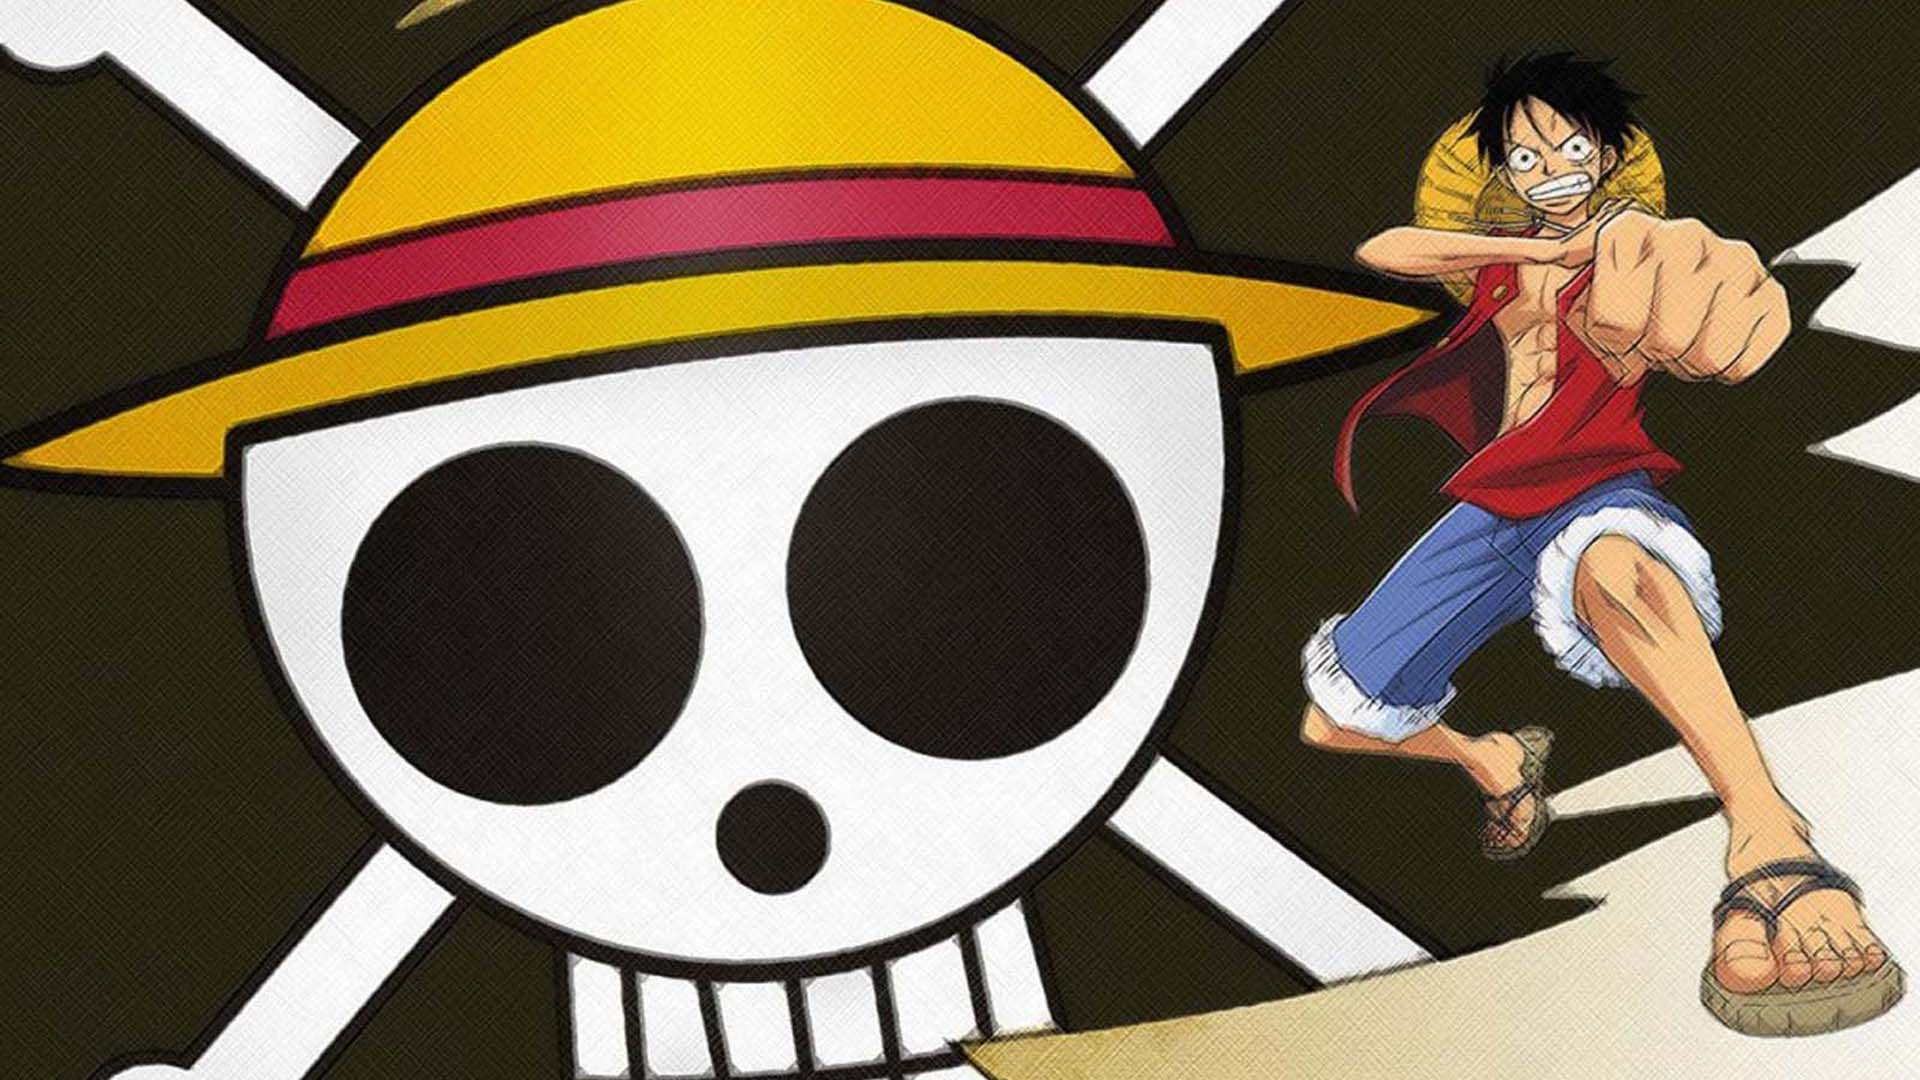 Monkey D Luffy Wallpapers 1920x1080 Wallpapers, 1920x1080